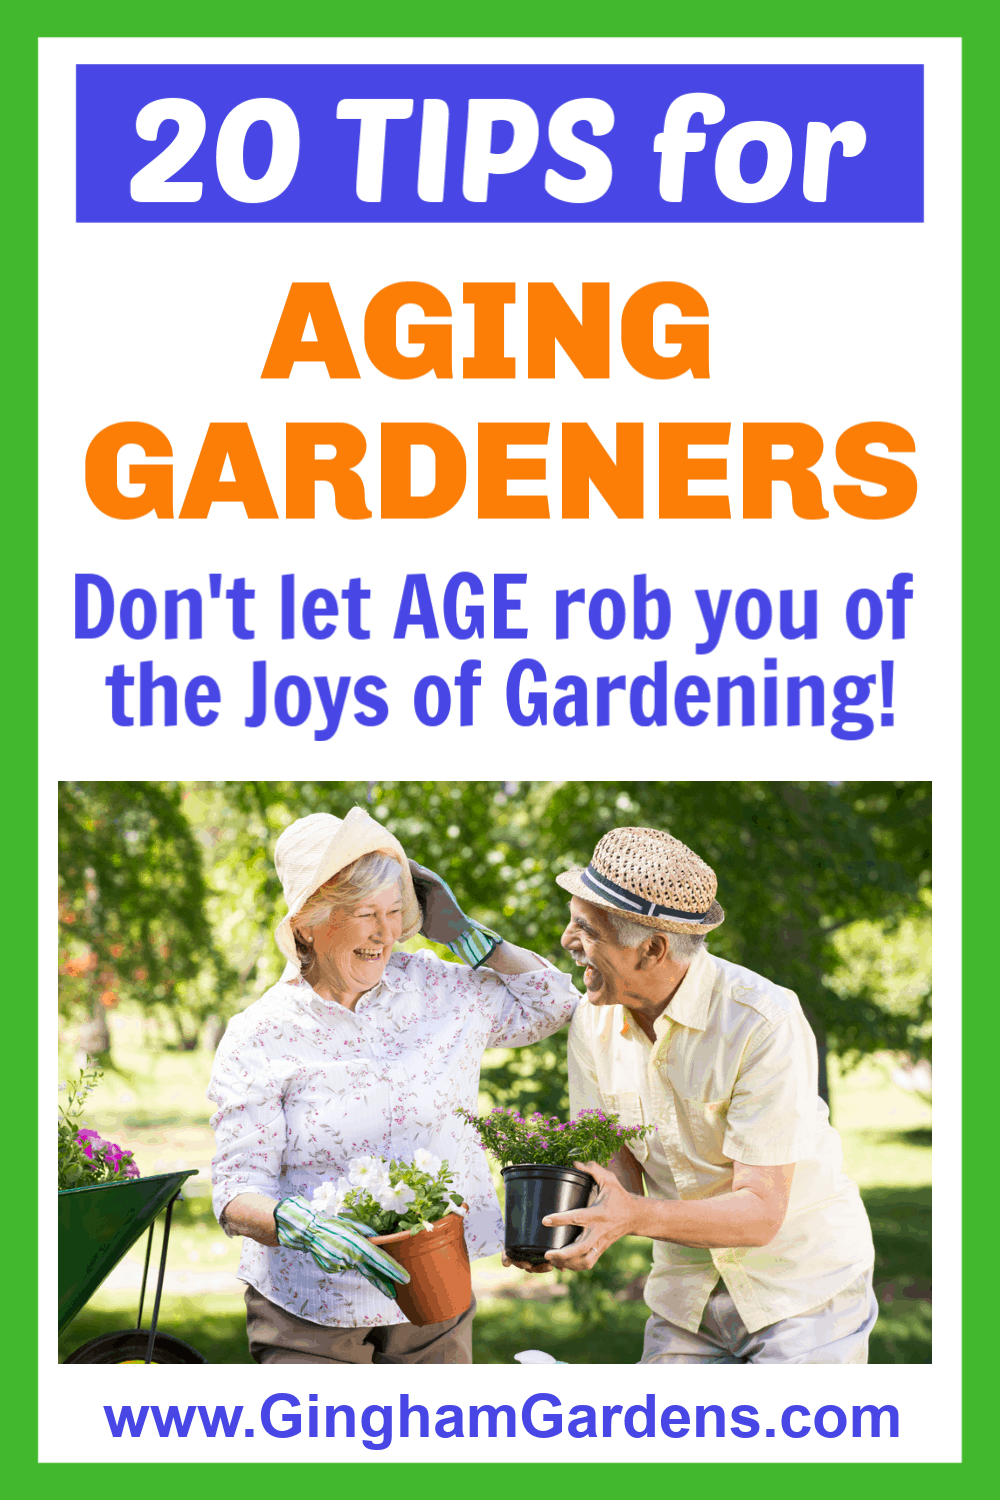 Image of Elderly Couple in a Garden with text overlay - 20 Tips for Aging Gardeners